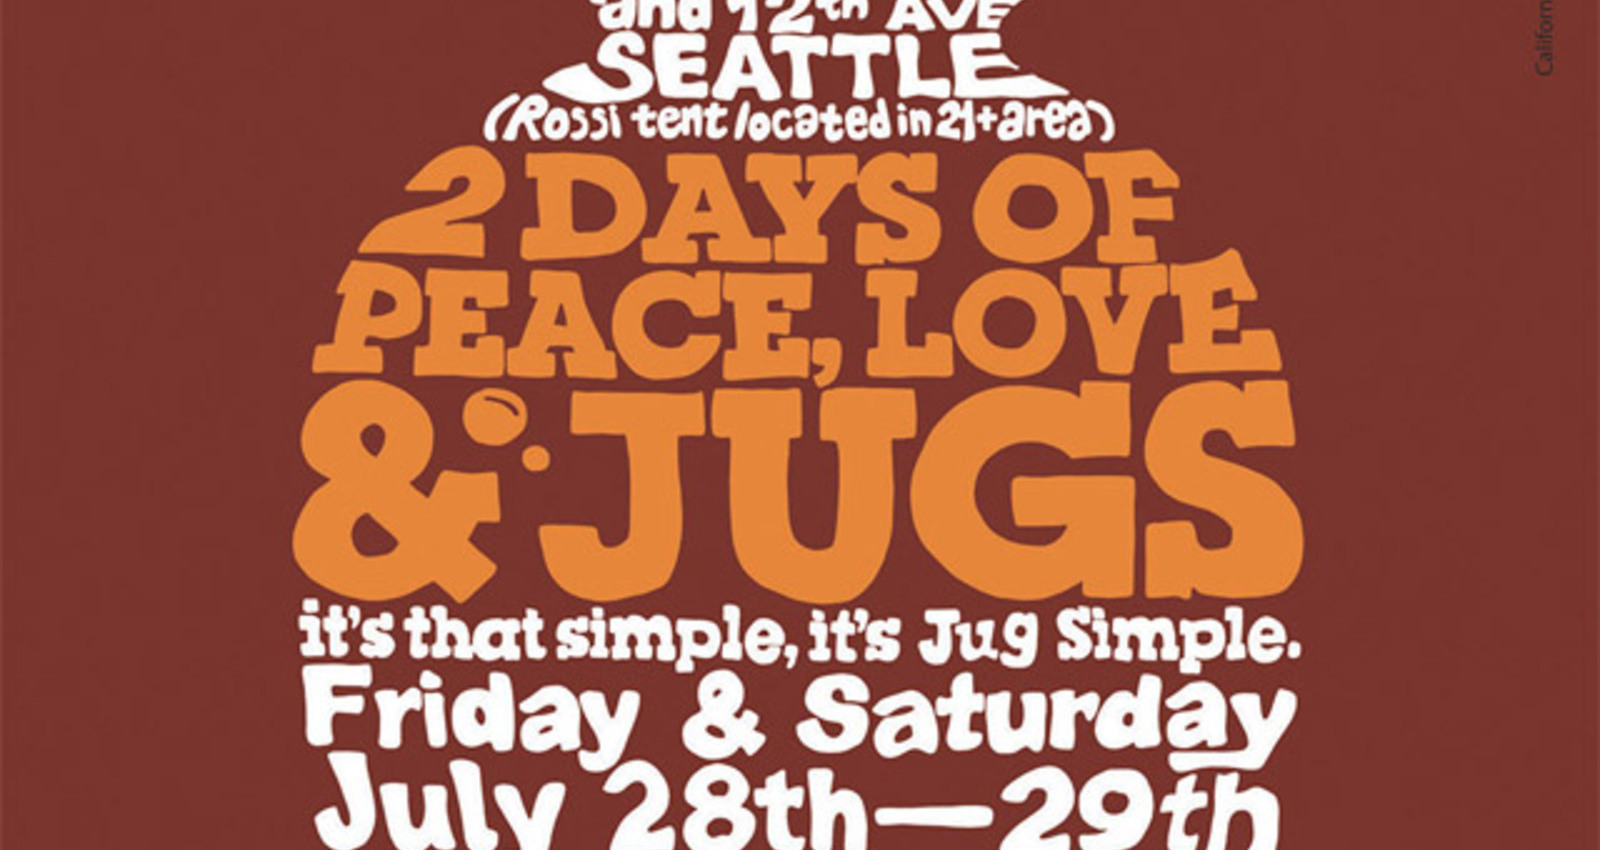 Jug Simple Furniture Tour